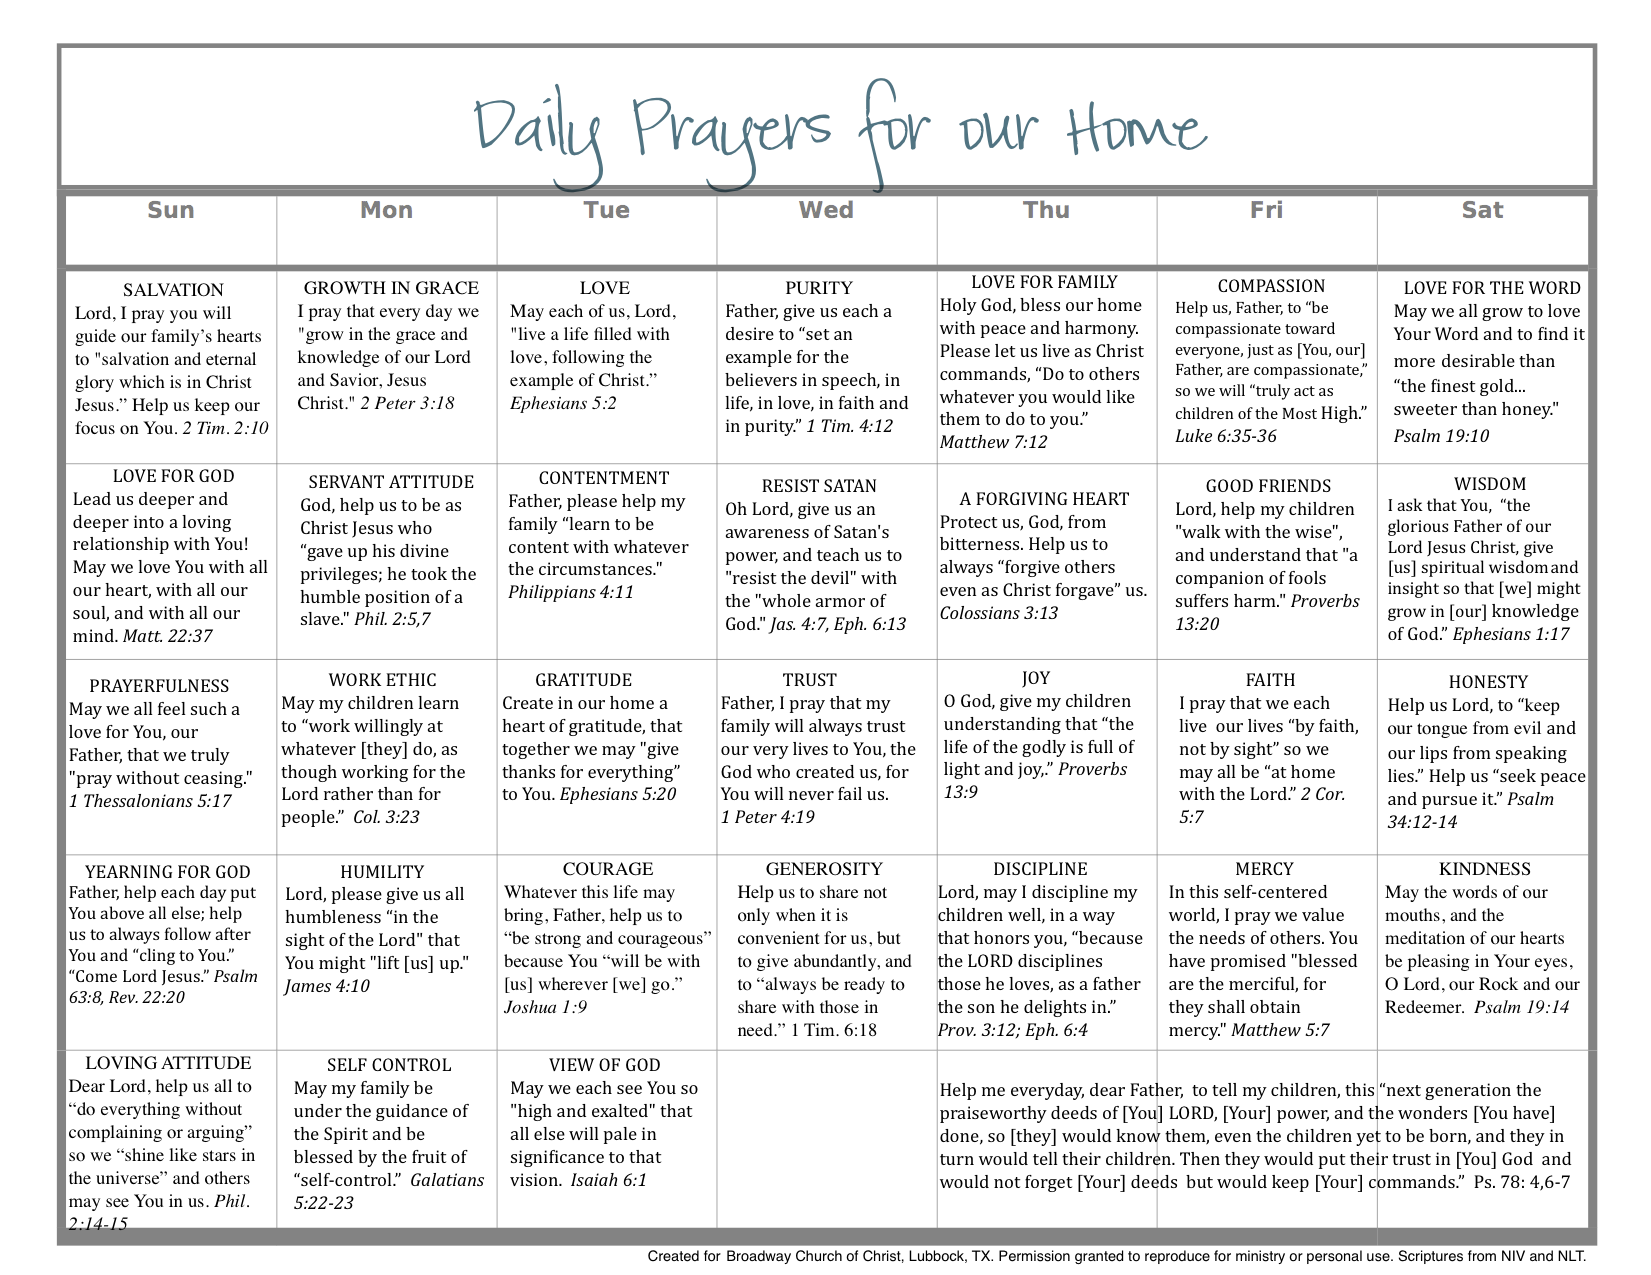 Daily Calendar To Pray Scripture For The Home